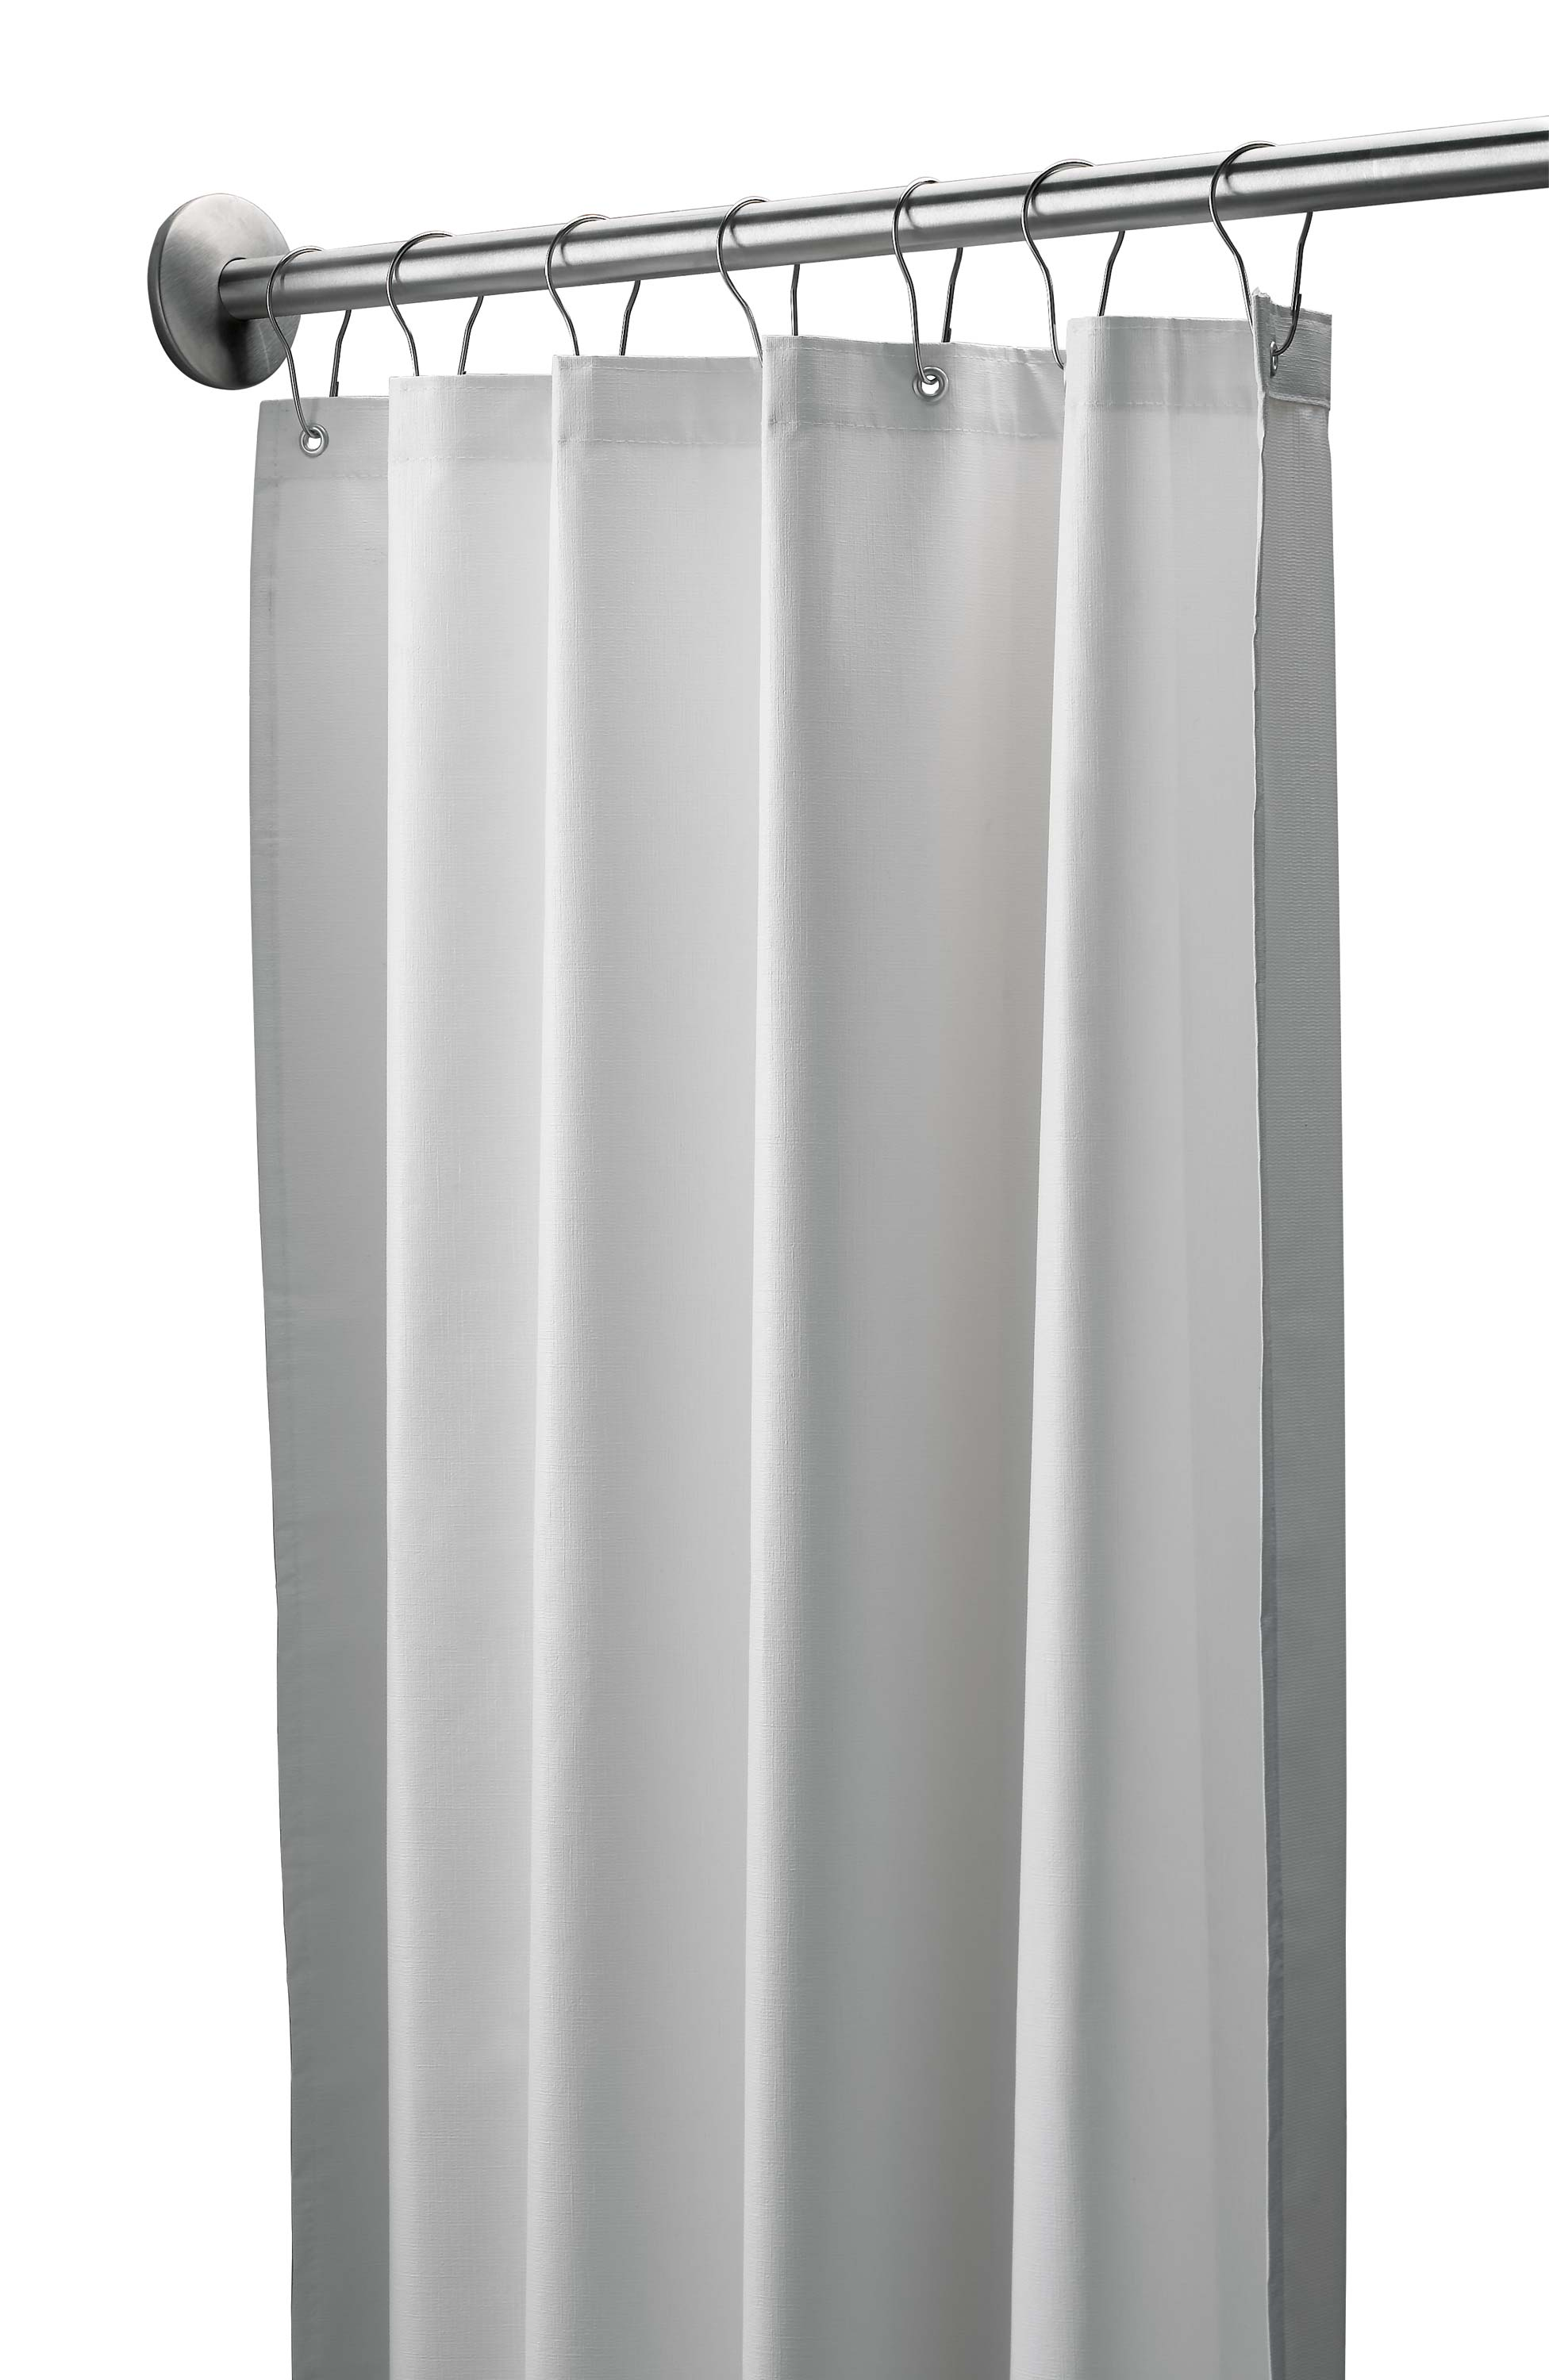 Antimicrobial Vinyl Shower Curtain Bradley Corporation